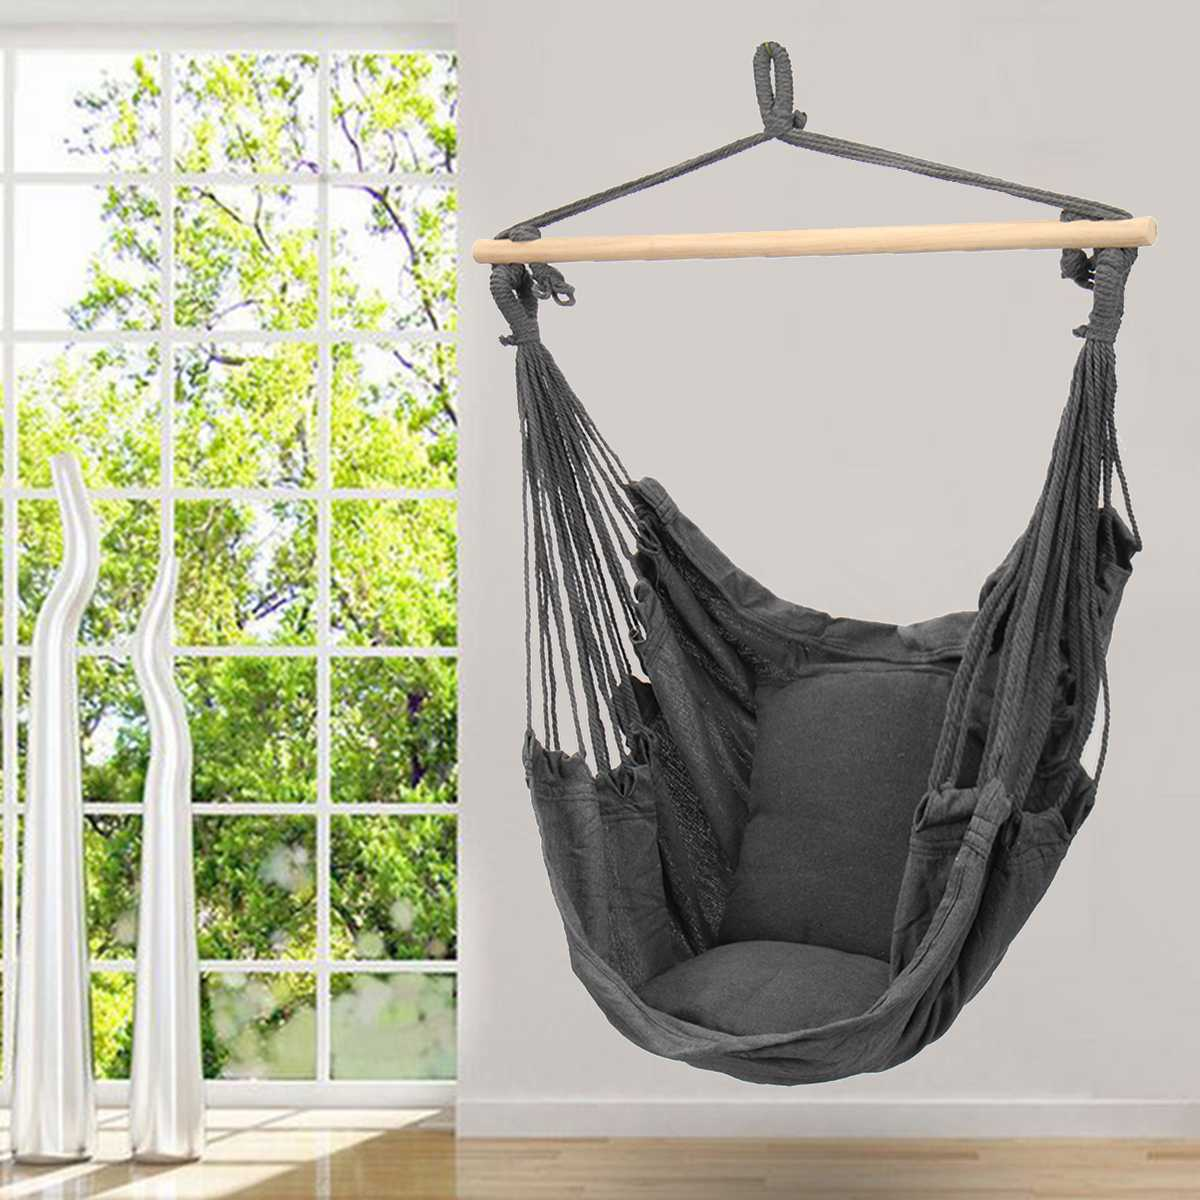 Hanging Hammock Chair Swinging Garden Outdoor Soft Cushions Seat 220KG Dormitory Bedroom Hanging Chair